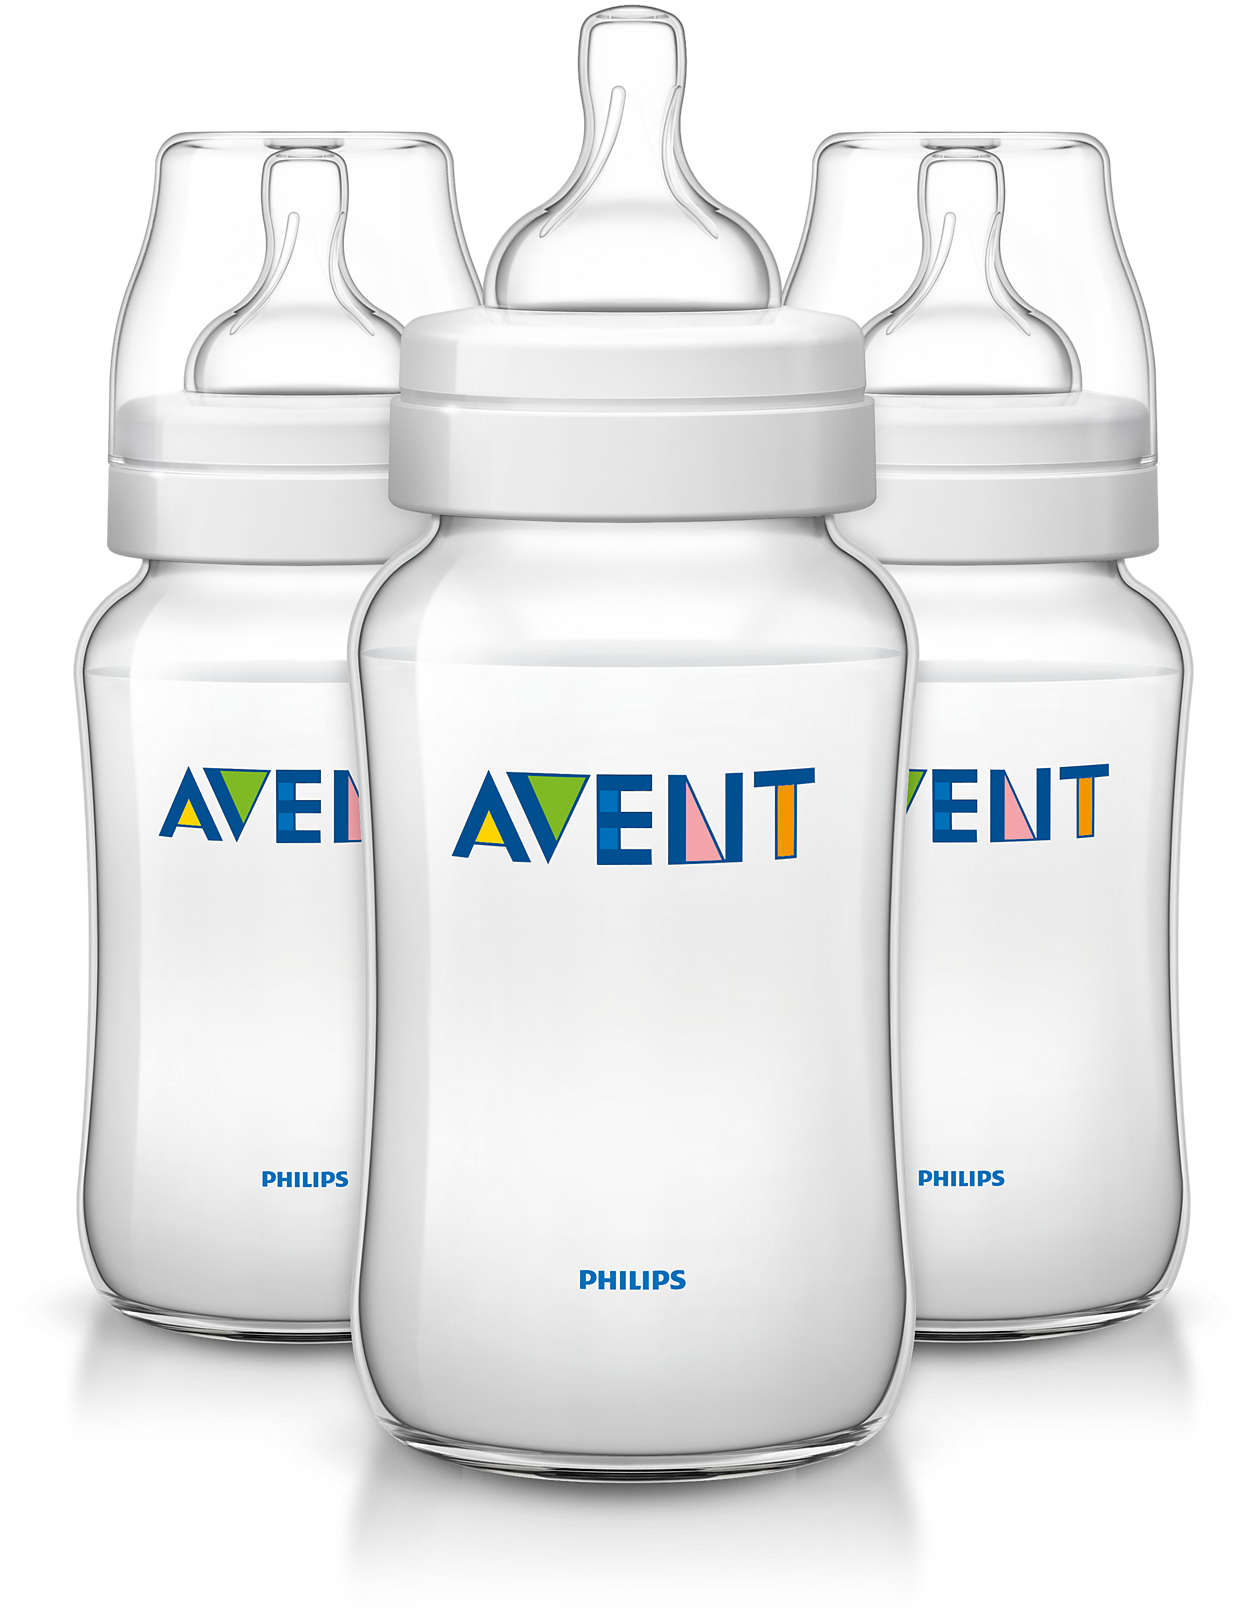 Clinically proven to reduce colic and discomfort*